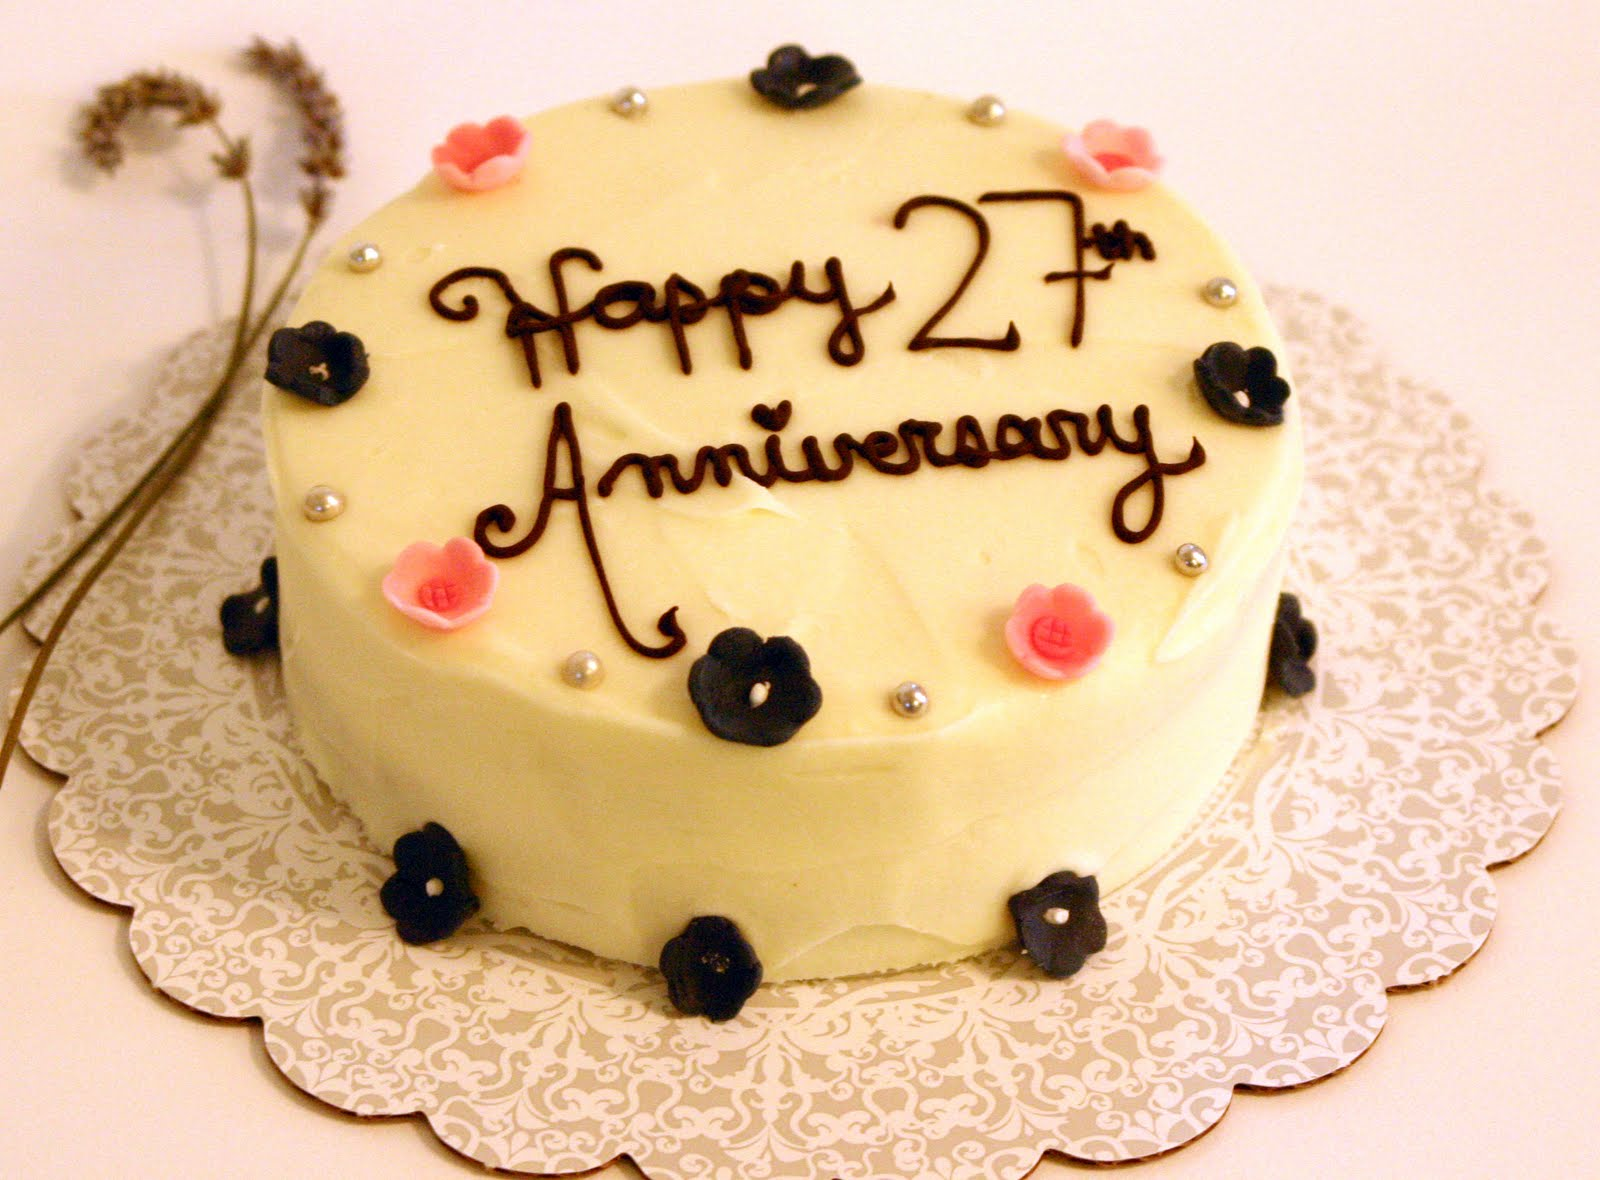 Happy 27th wedding anniversary cake images - My site Daot tk